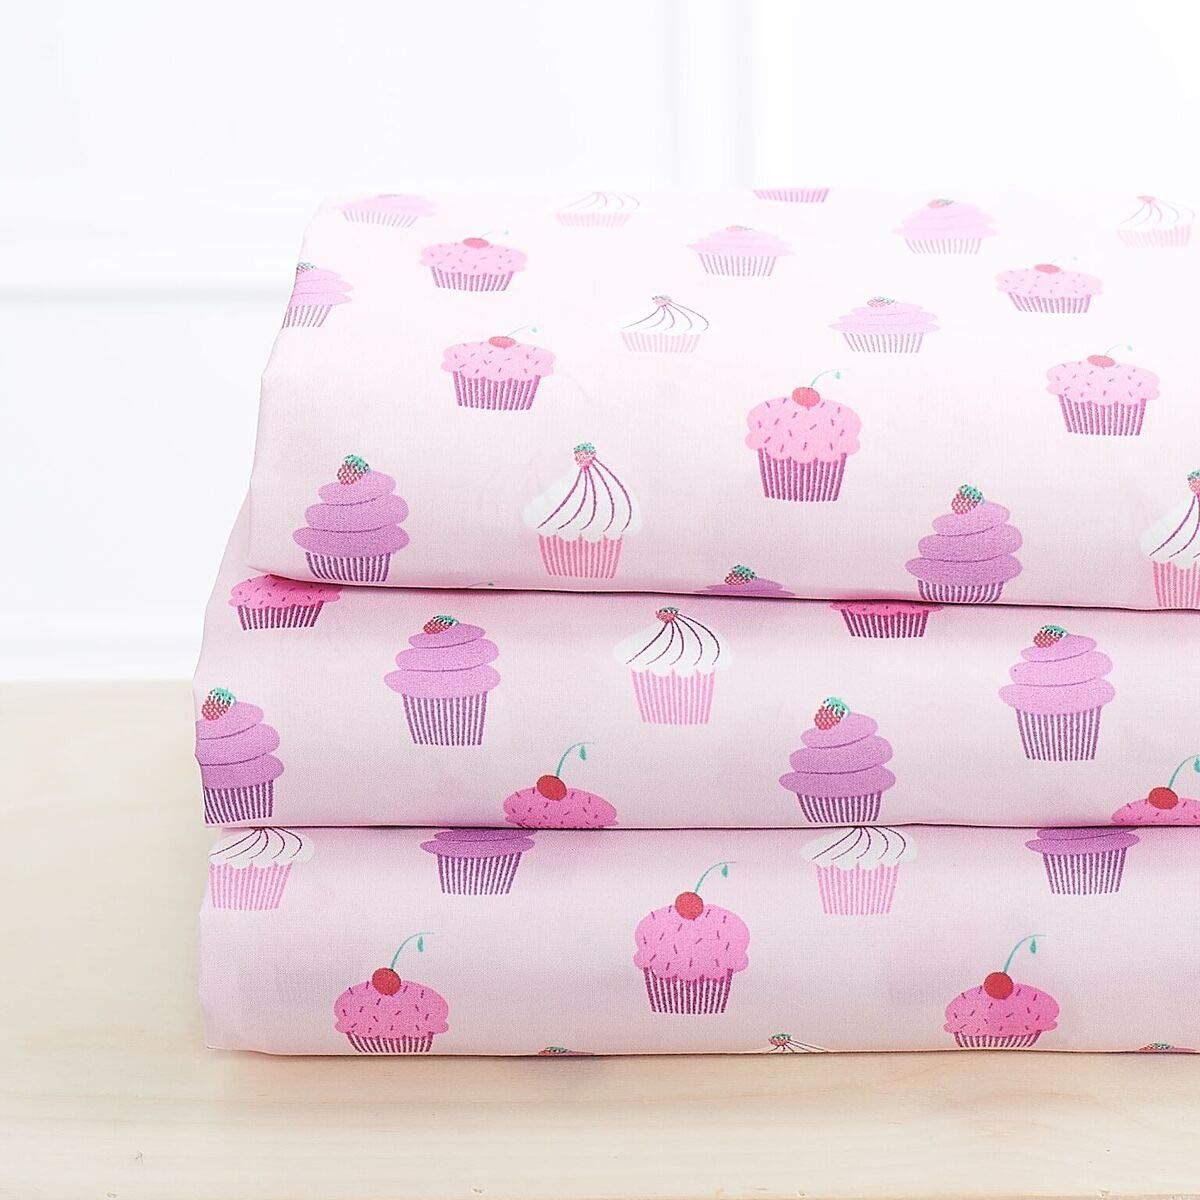 Elegant Home Multicolors Pink Purple Cupcakes Design 3 Piece Printed Sheet Set with Pillowcase Flat Fitted Sheet for Girls/Kids/Teens # Cupcake (Twin Size)